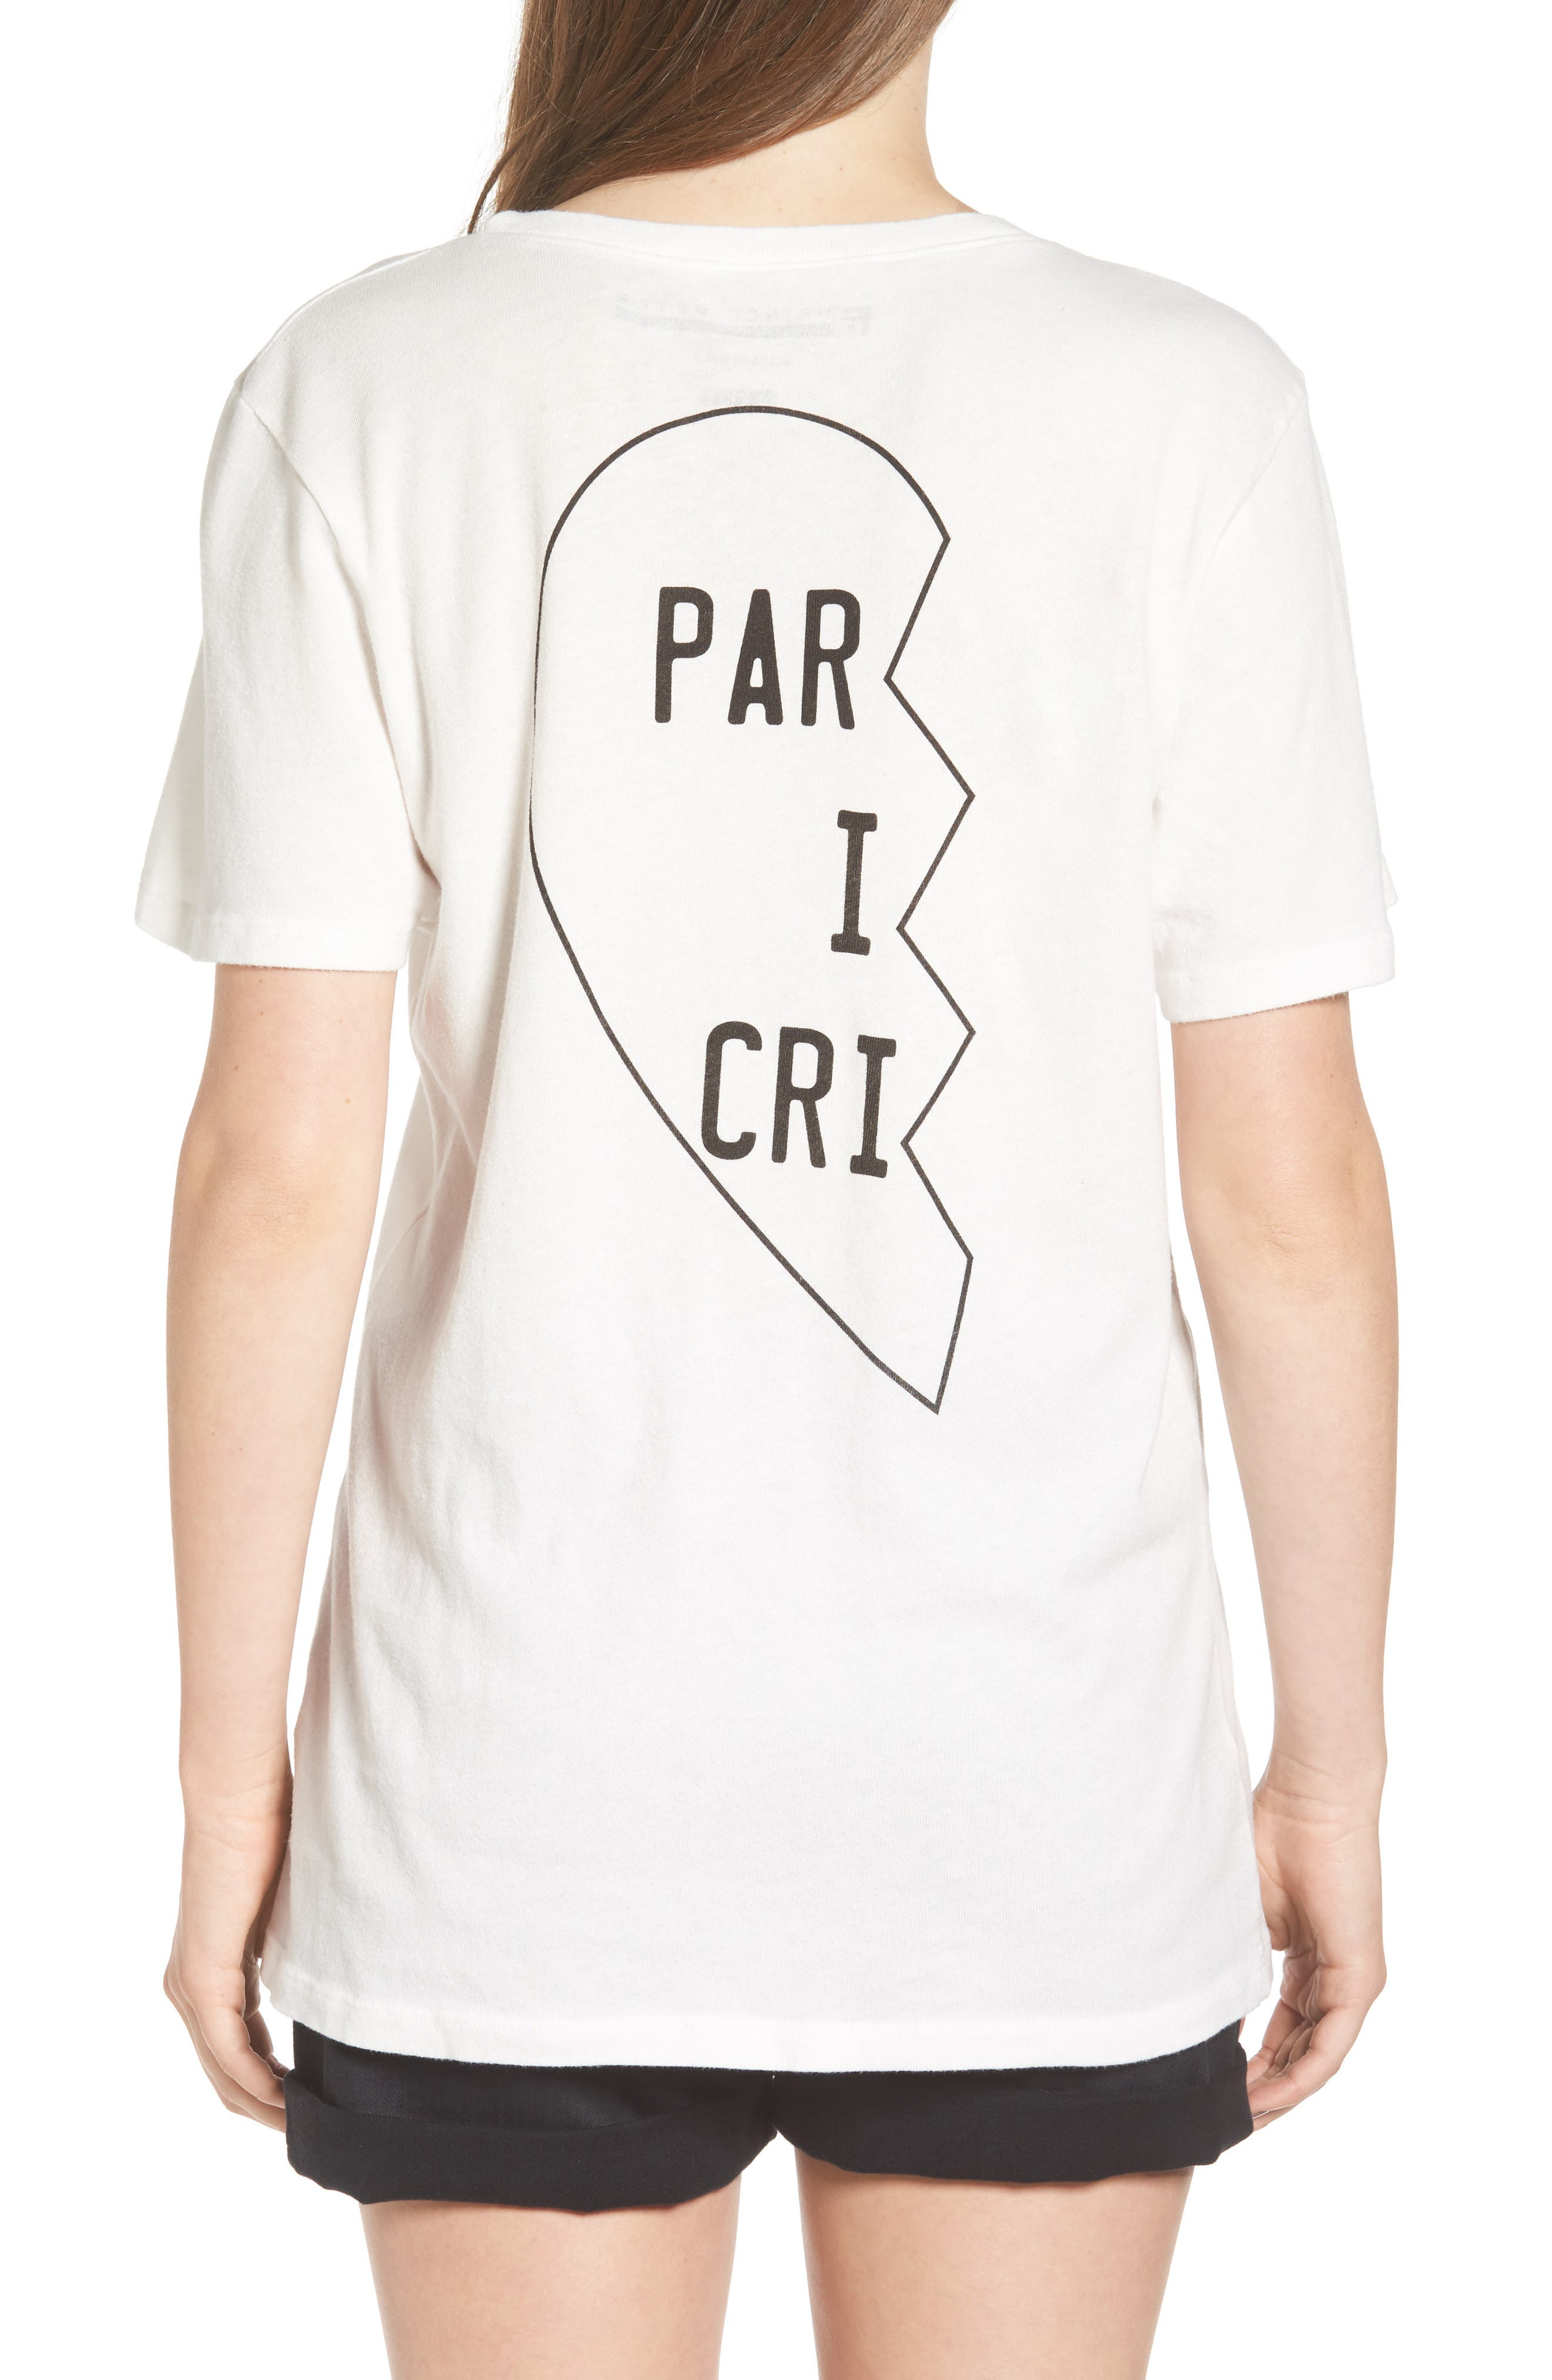 PRINCE PETER Distressed Tee in White